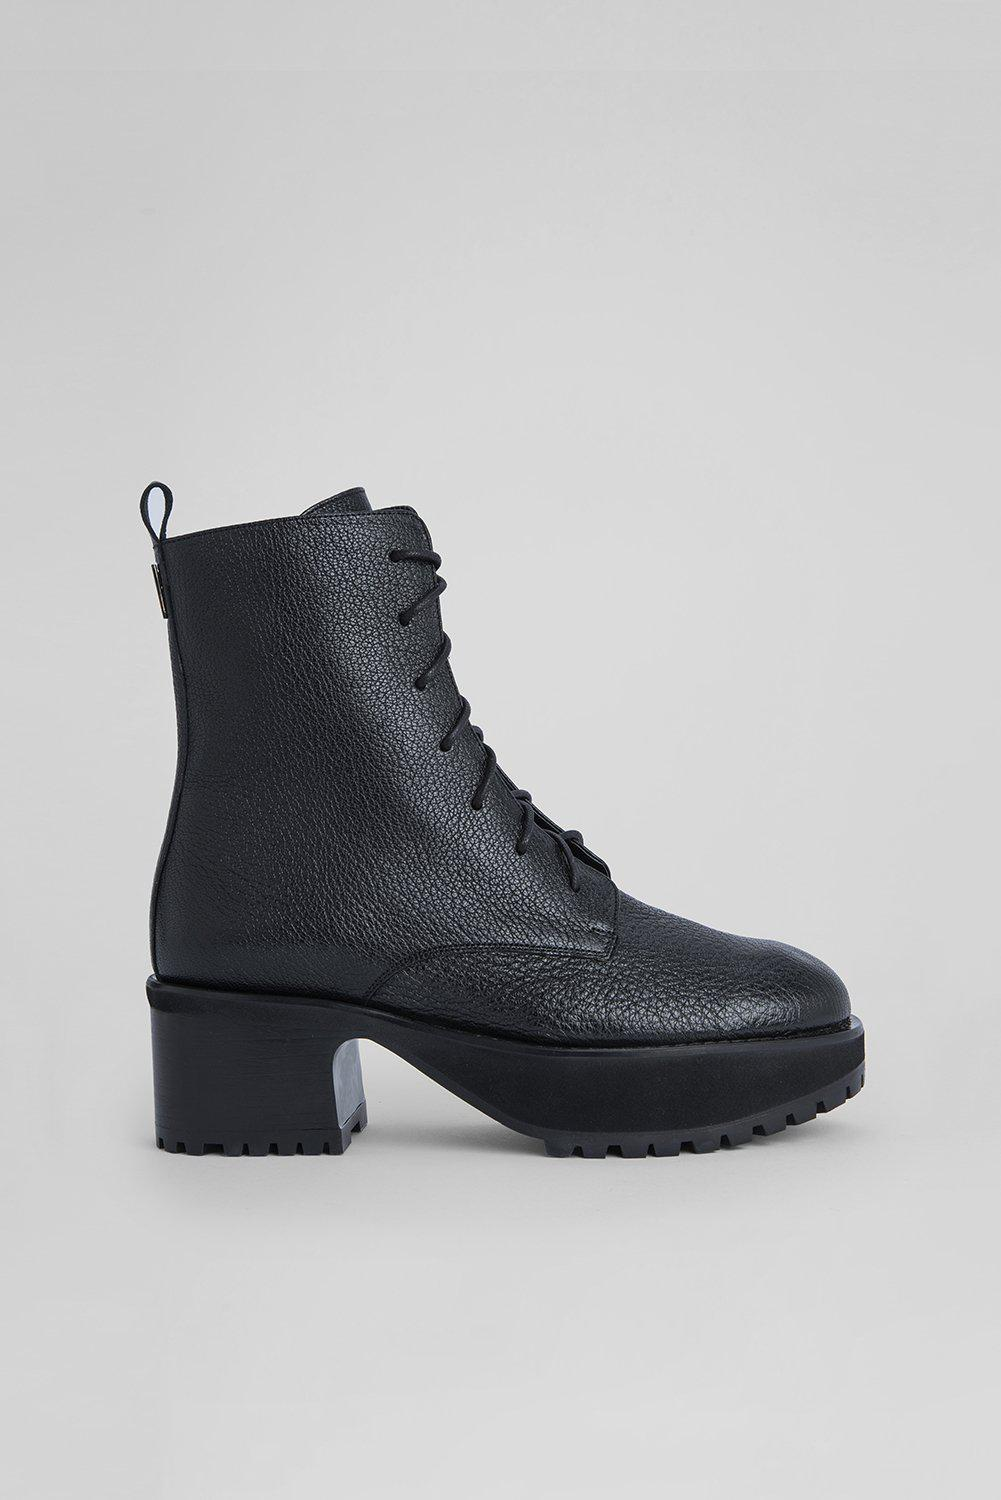 Cobain Black Grained Leather